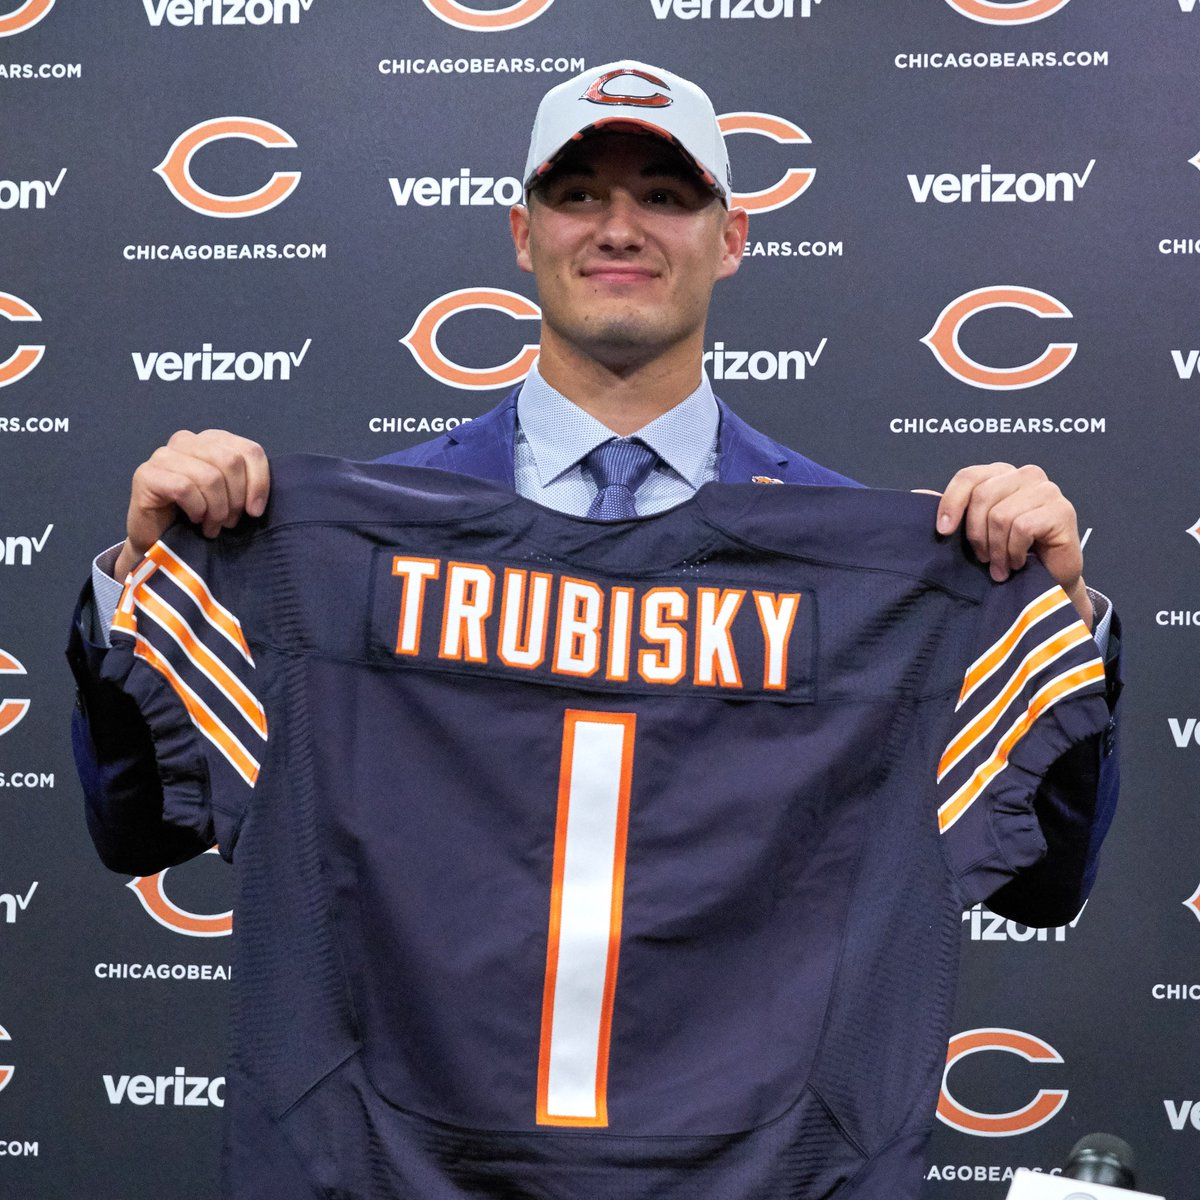 They grow up so fast 😅 Happy 25th birthday, @Mtrubisky10!